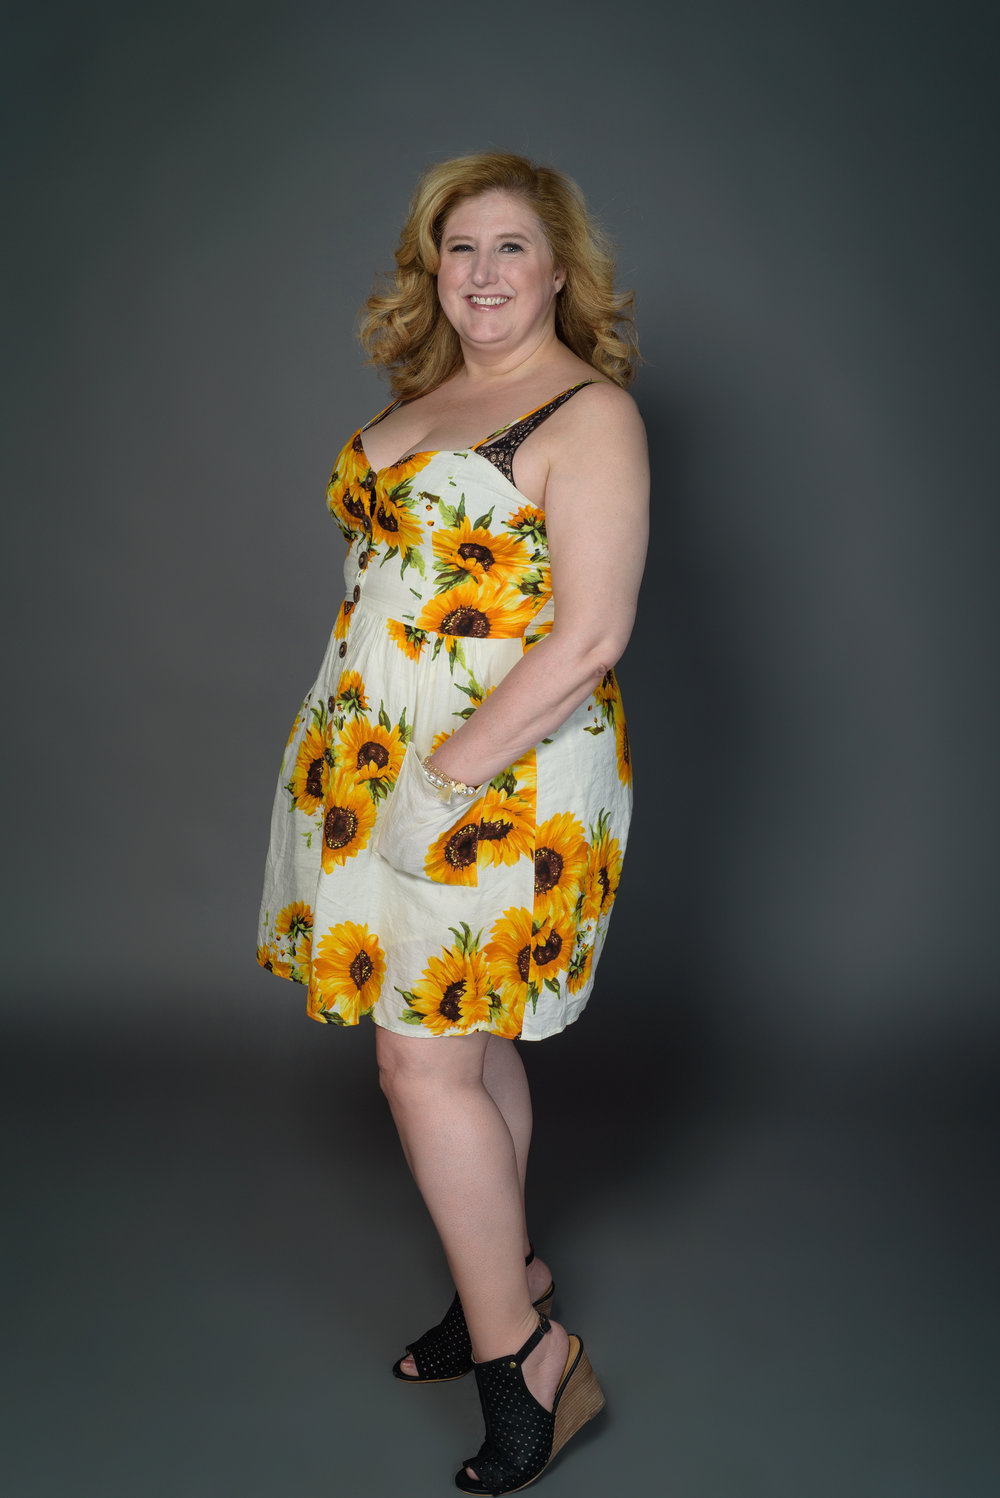 pocket full of sunshine dress  - We're in love with this sunflowered dress and it's big brown buttons going down the middle. Also, ONE WORD: POCKETS!!!